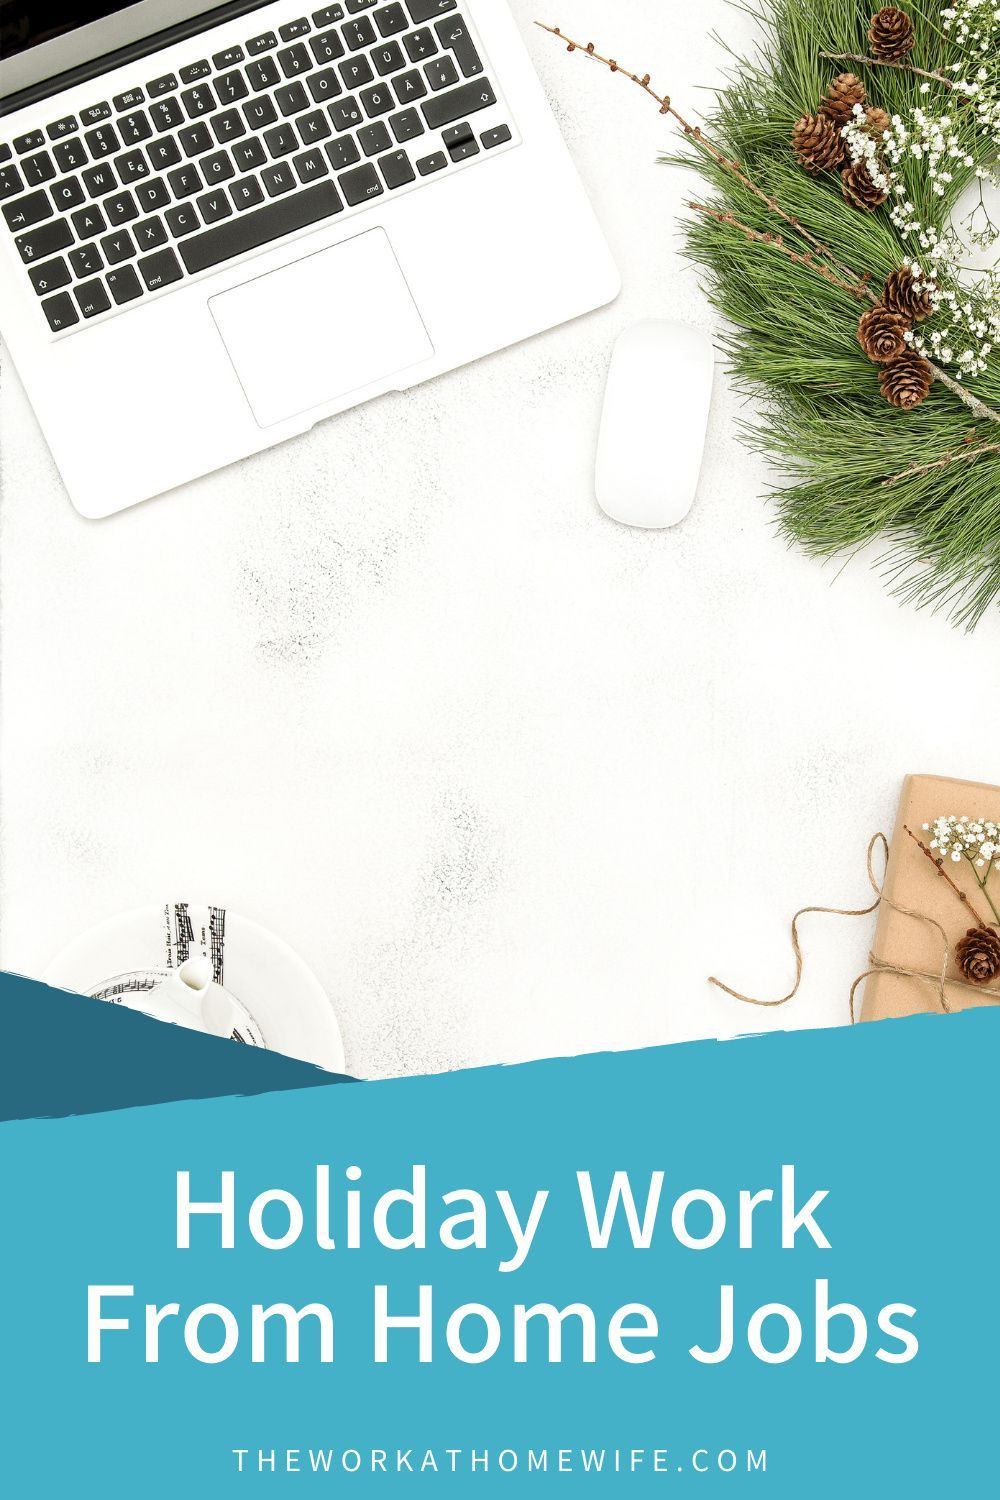 Holiday Work From Home Jobs Work At Home Taking Orders Helping Shoppers In 2020 Work From Home Jobs Working From Home Home Jobs